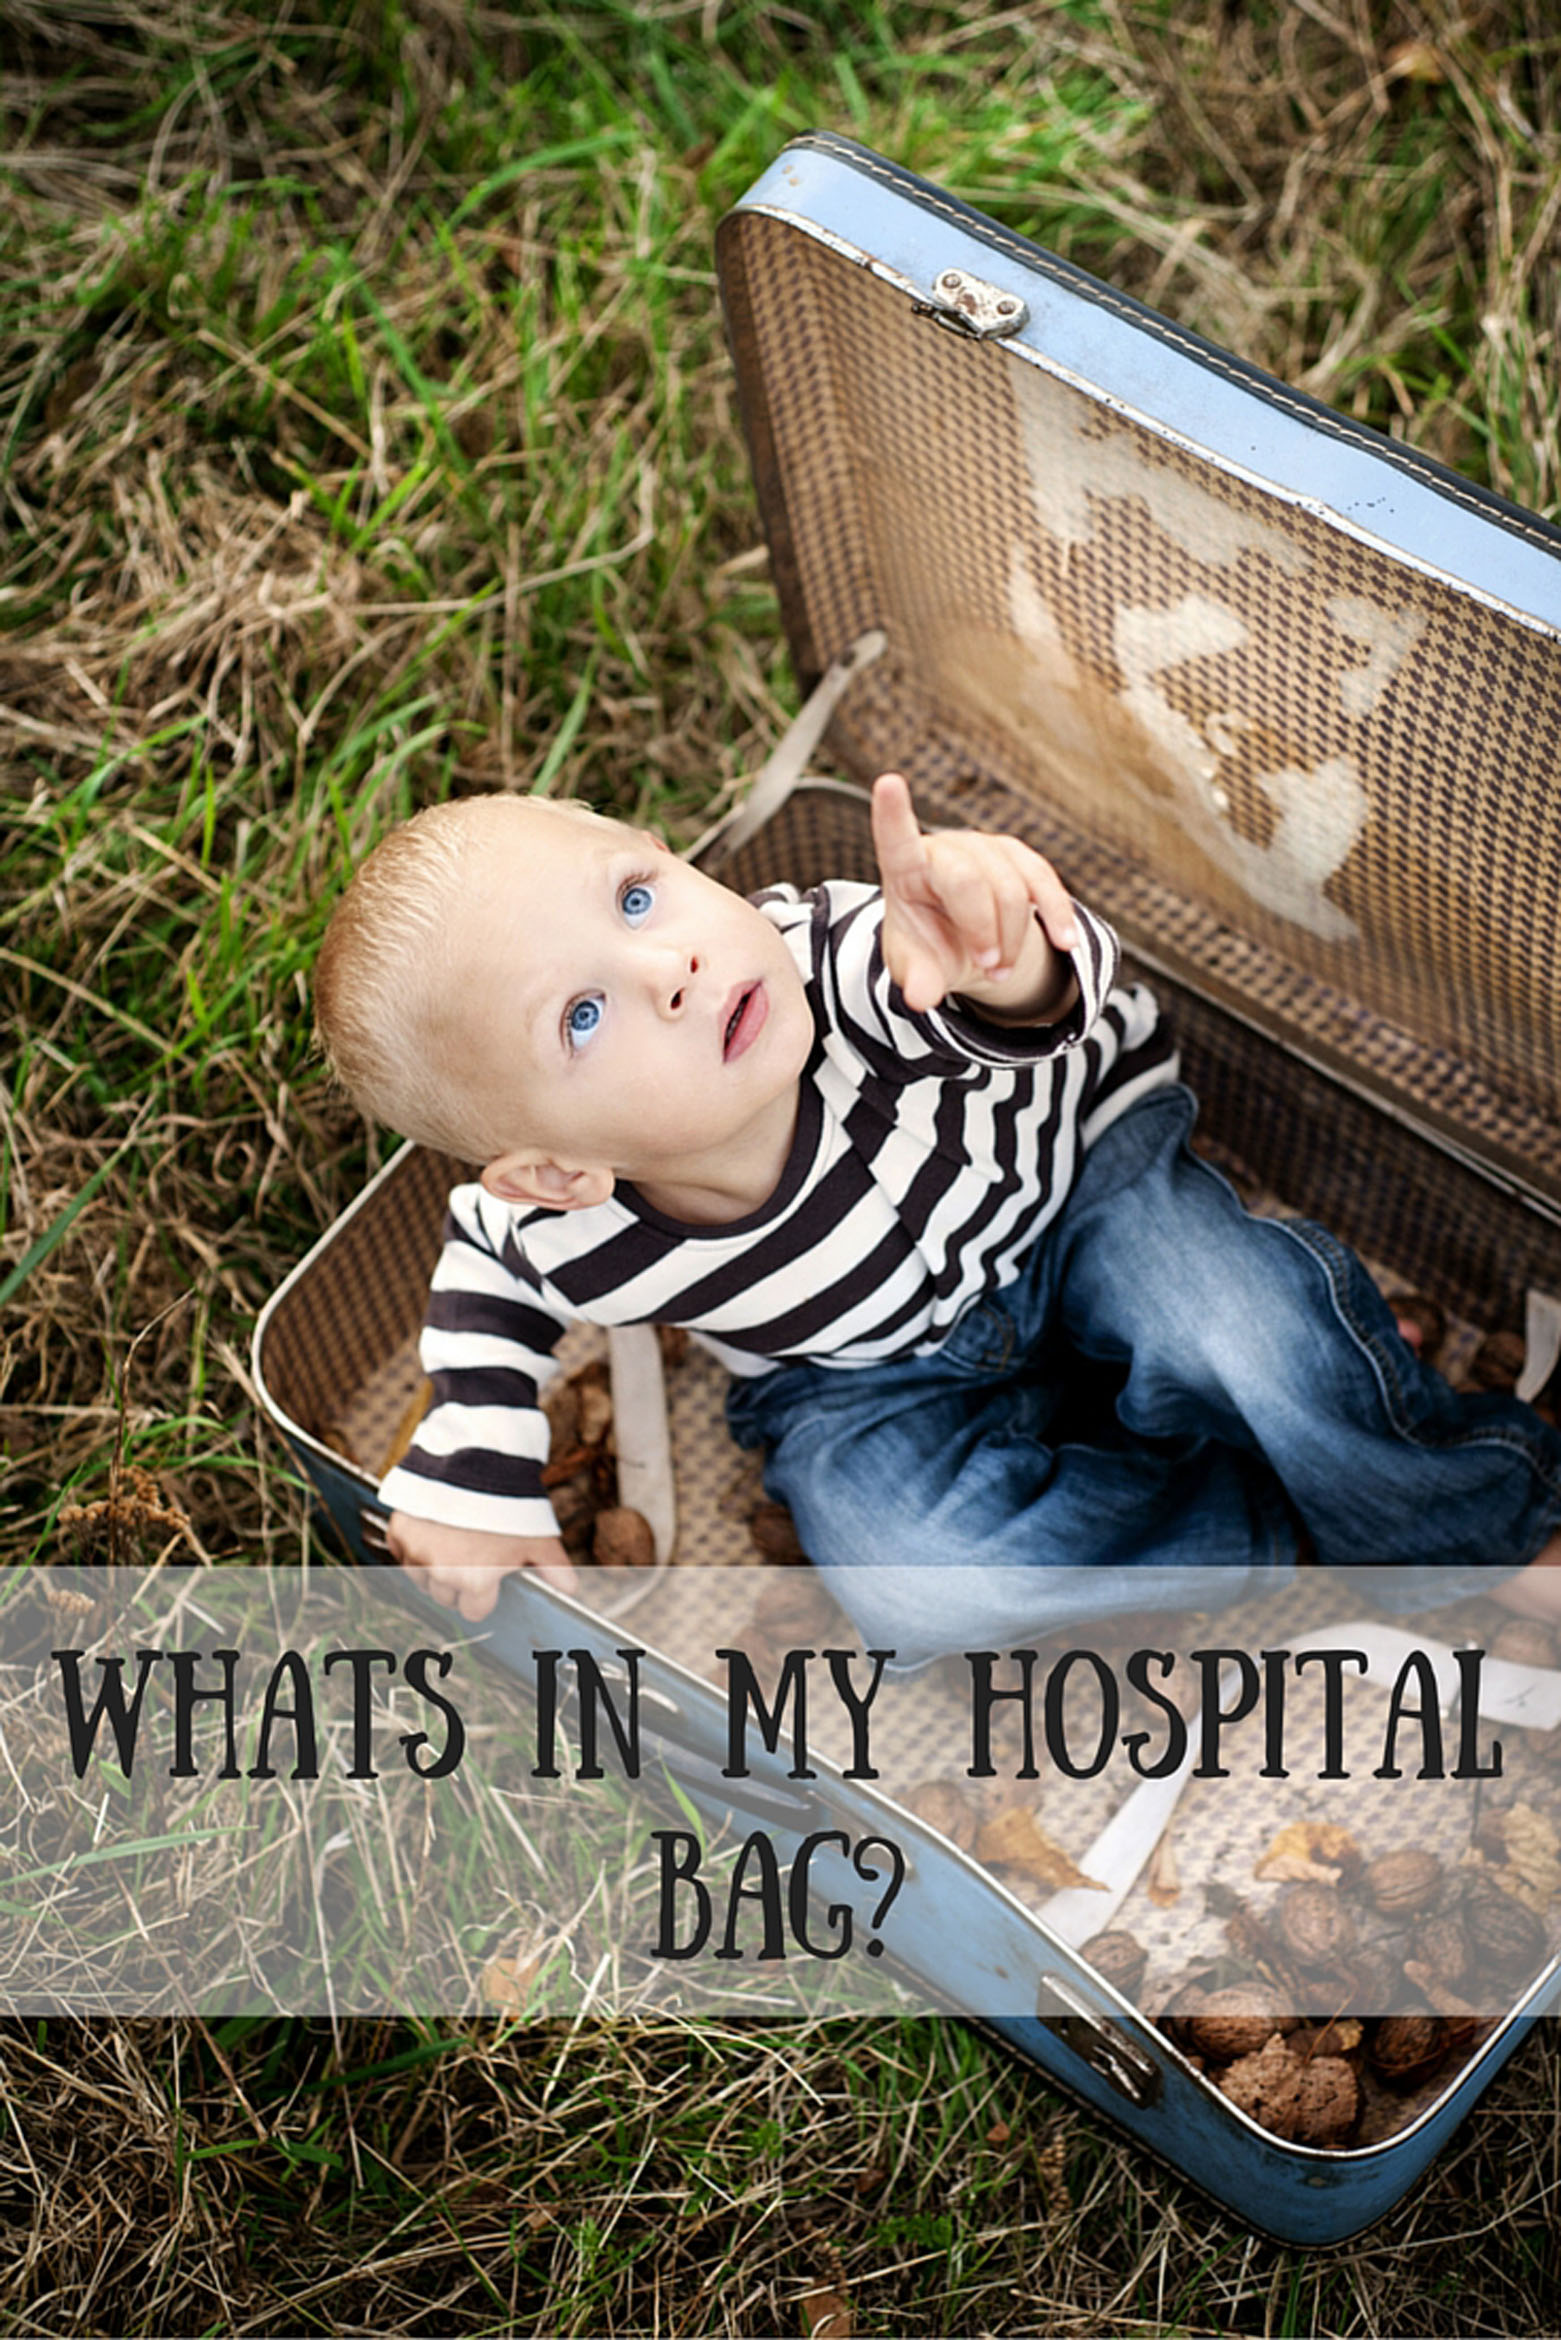 Whats in my hospital bag